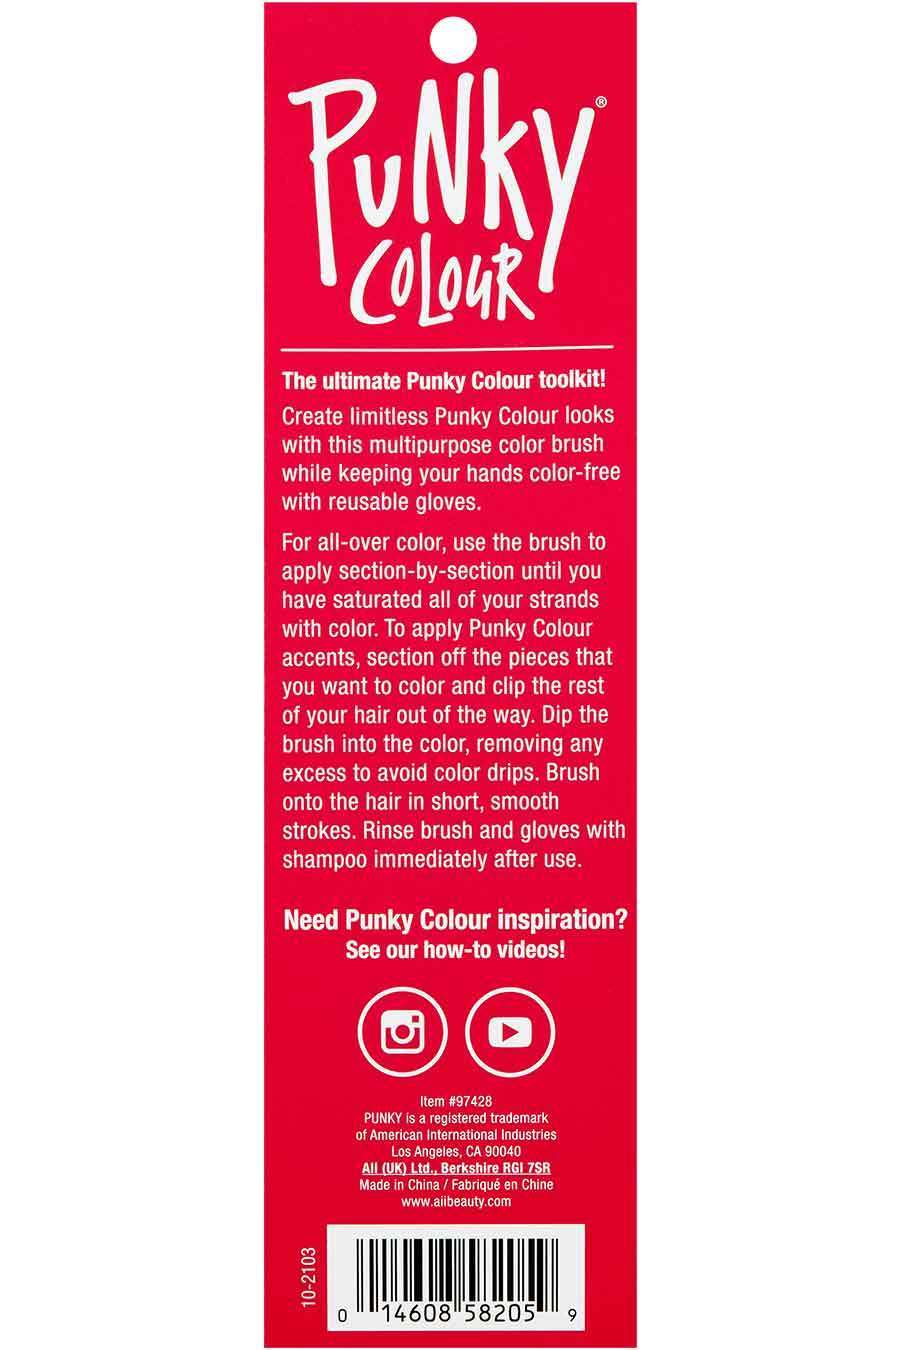 Tinting Brush Gloves by punky colour #11